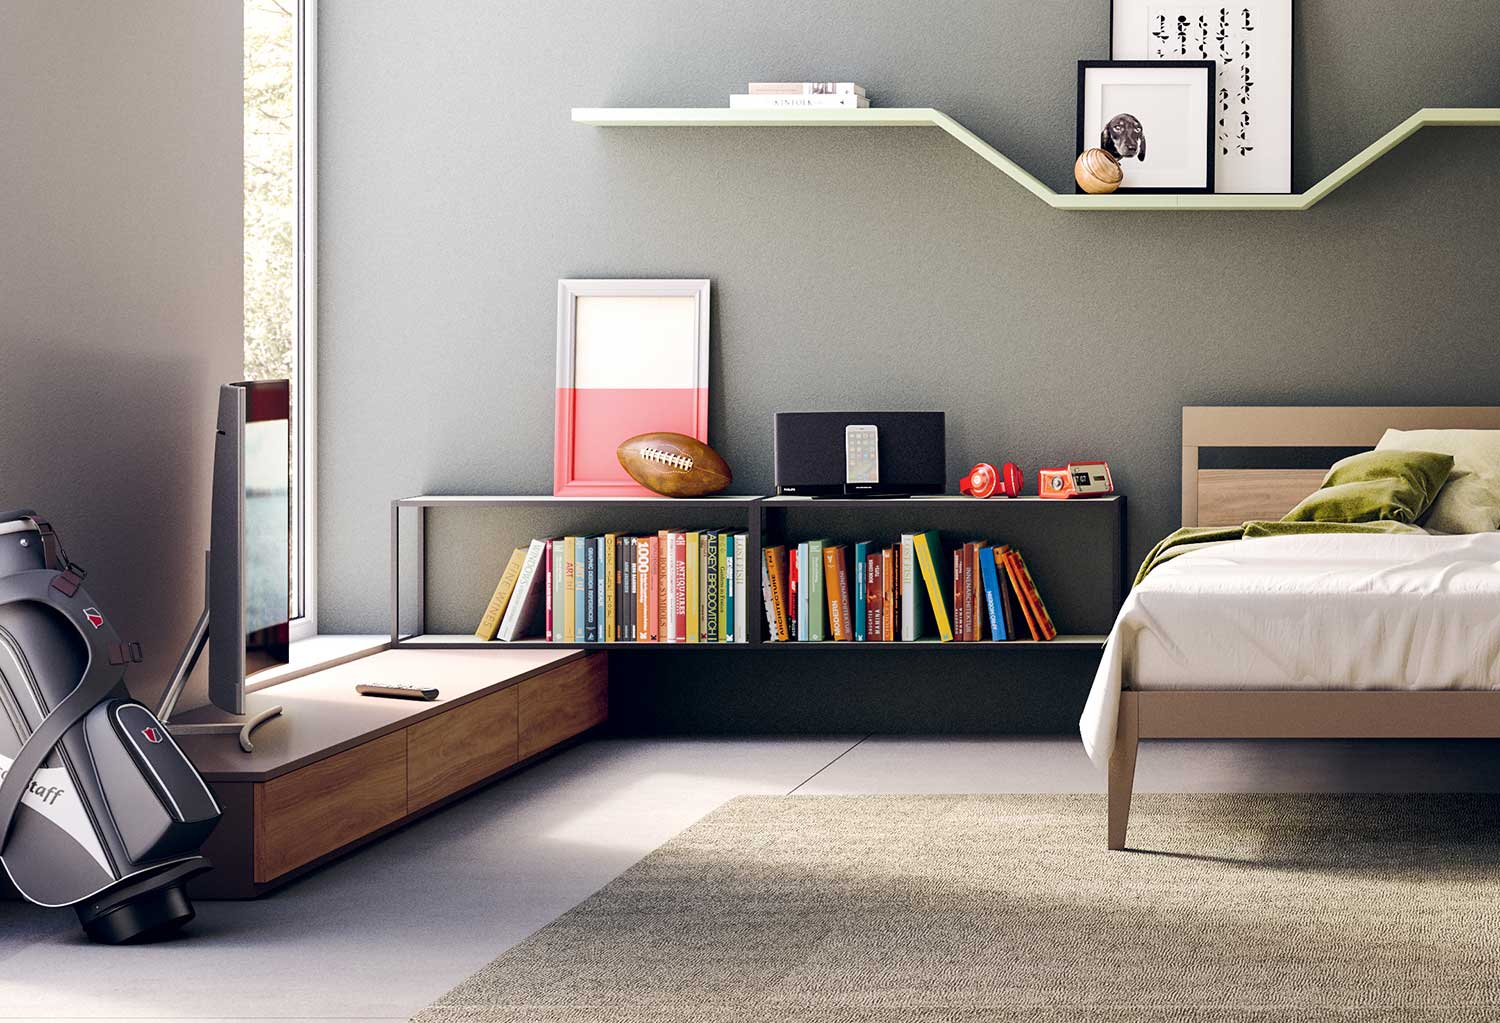 You can position the shelves anywhere, here used as bedside storage